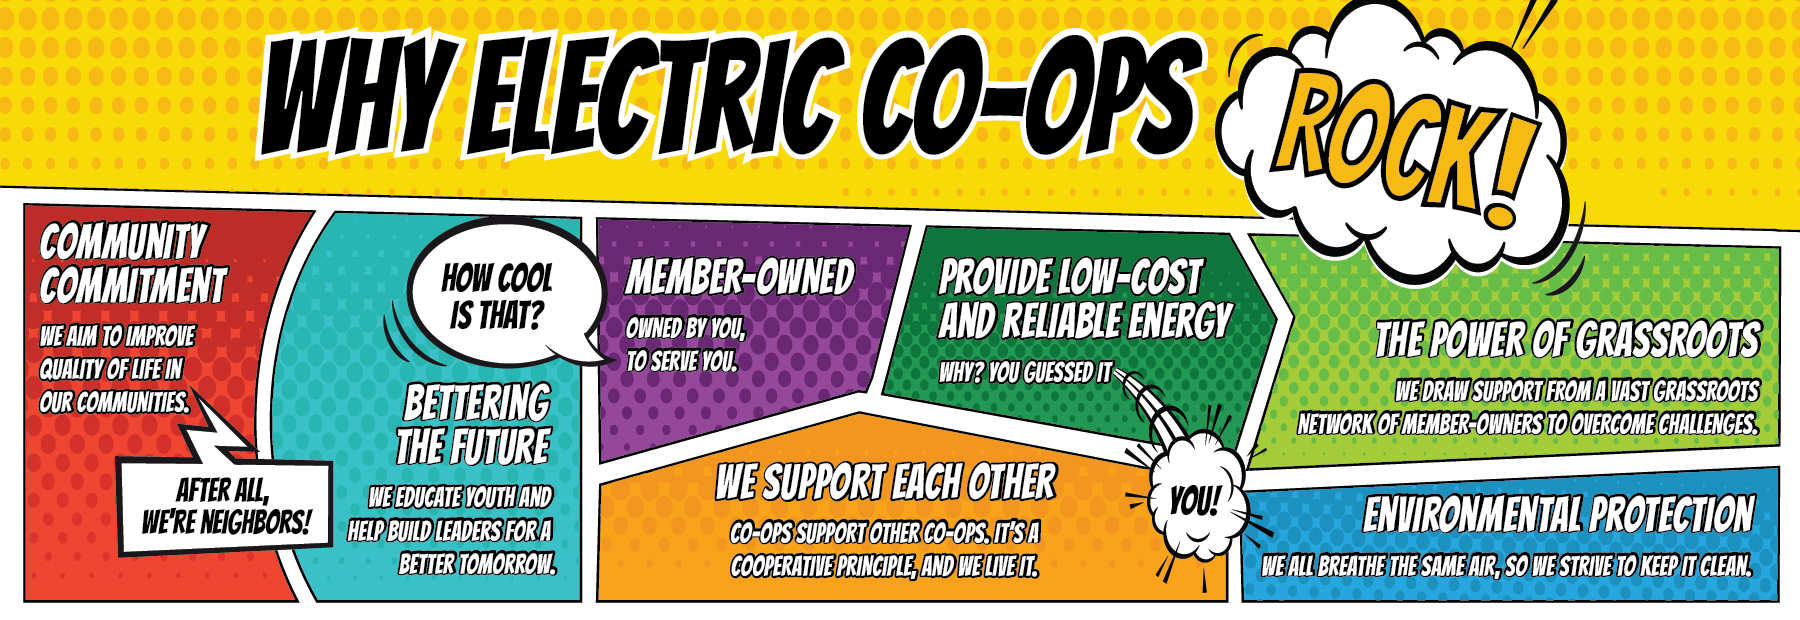 Why Co-ops Rock!